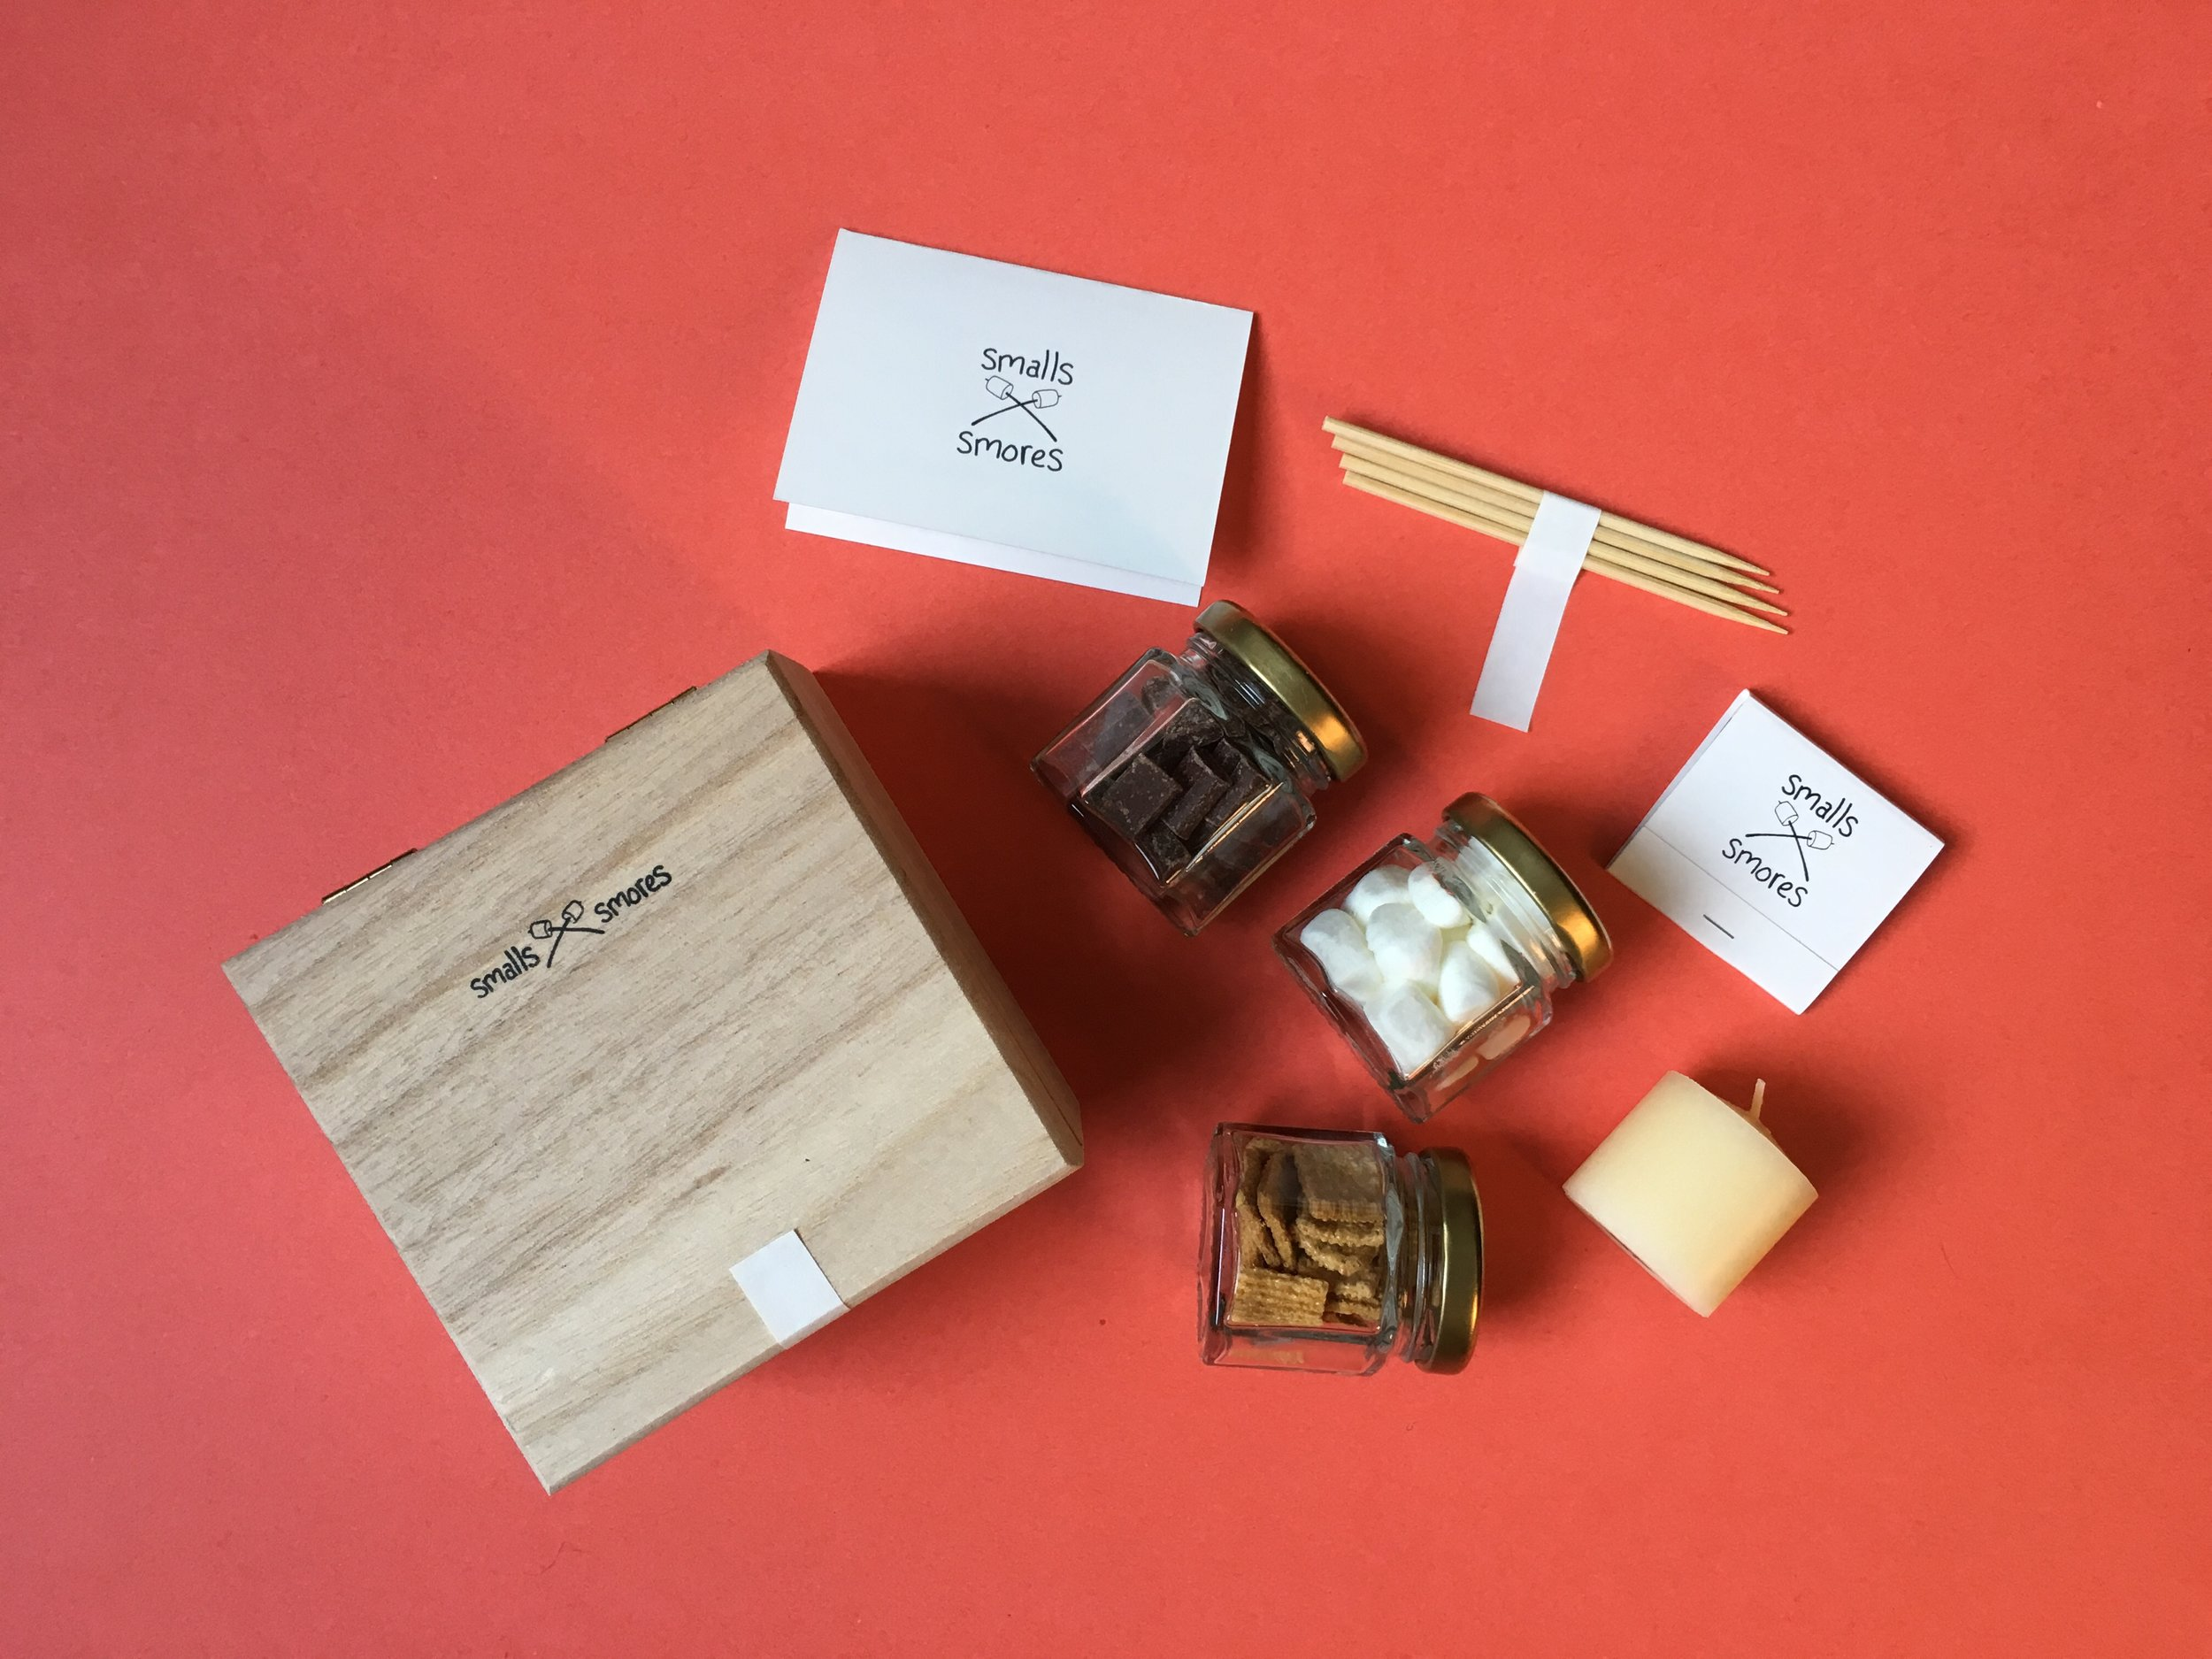 Smalls Smores: The all-in-one tiny s'more experience in one beautiful kit. - - - - - -